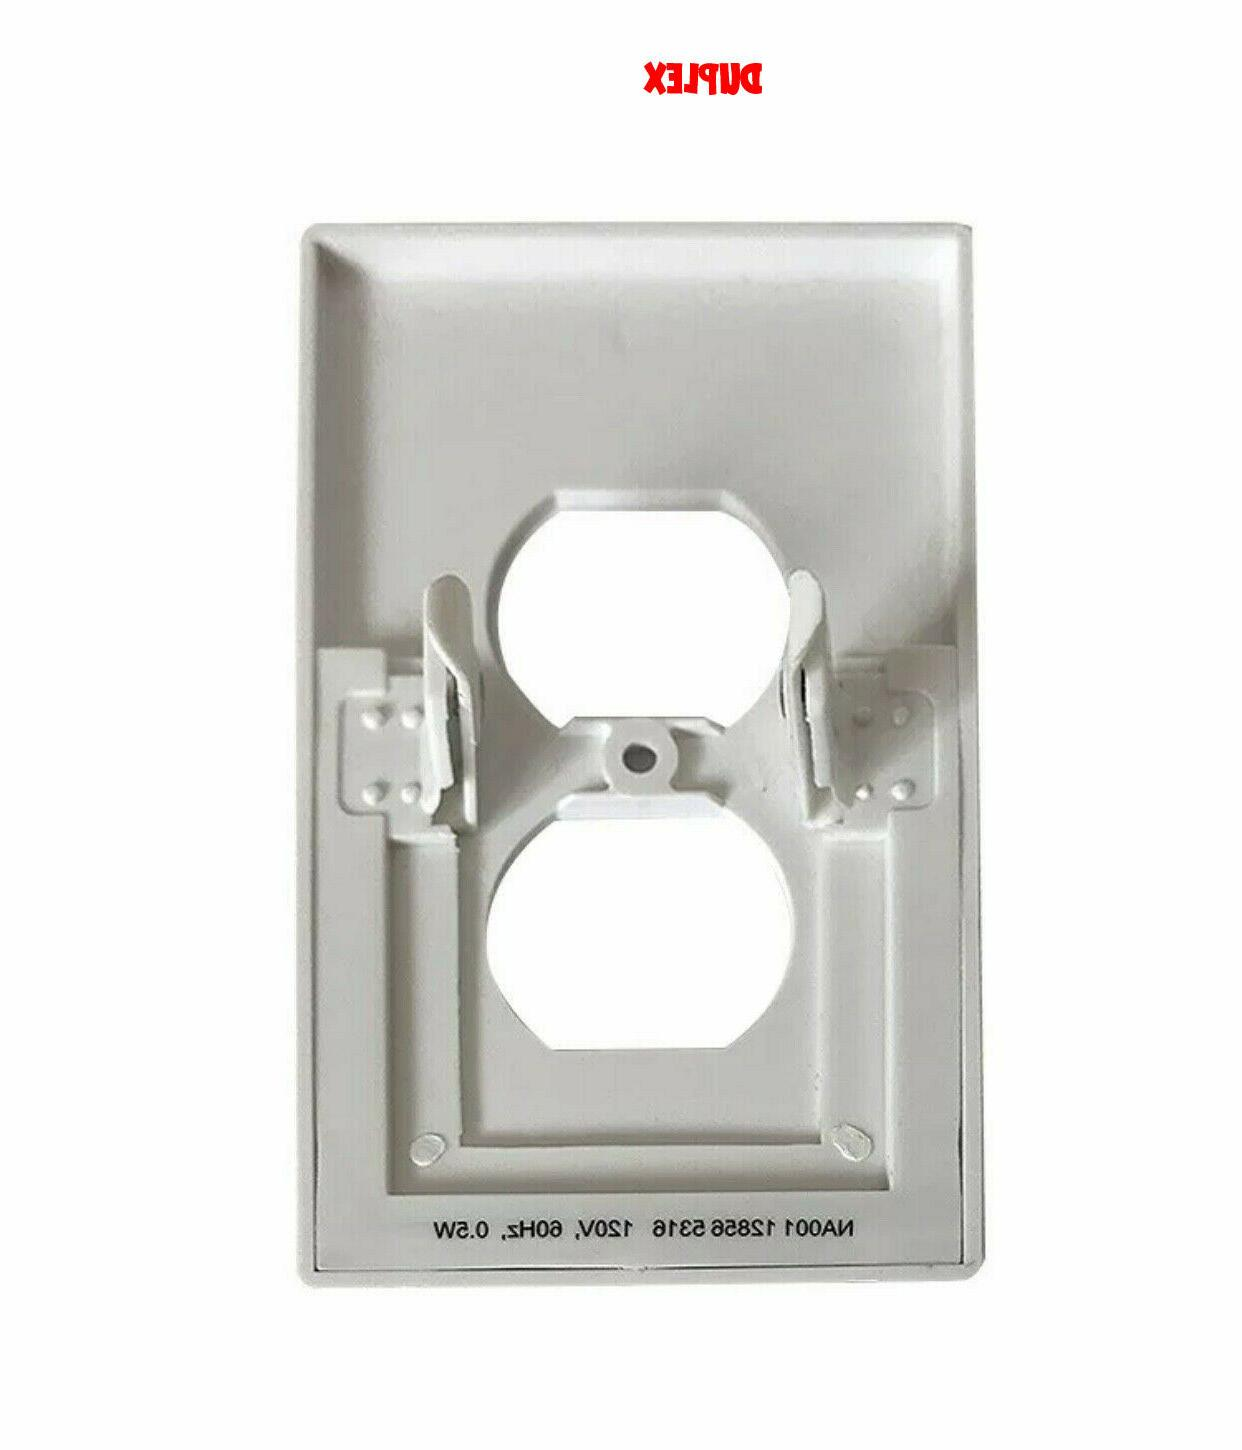 Outlet Wall Night Decor With Sensor